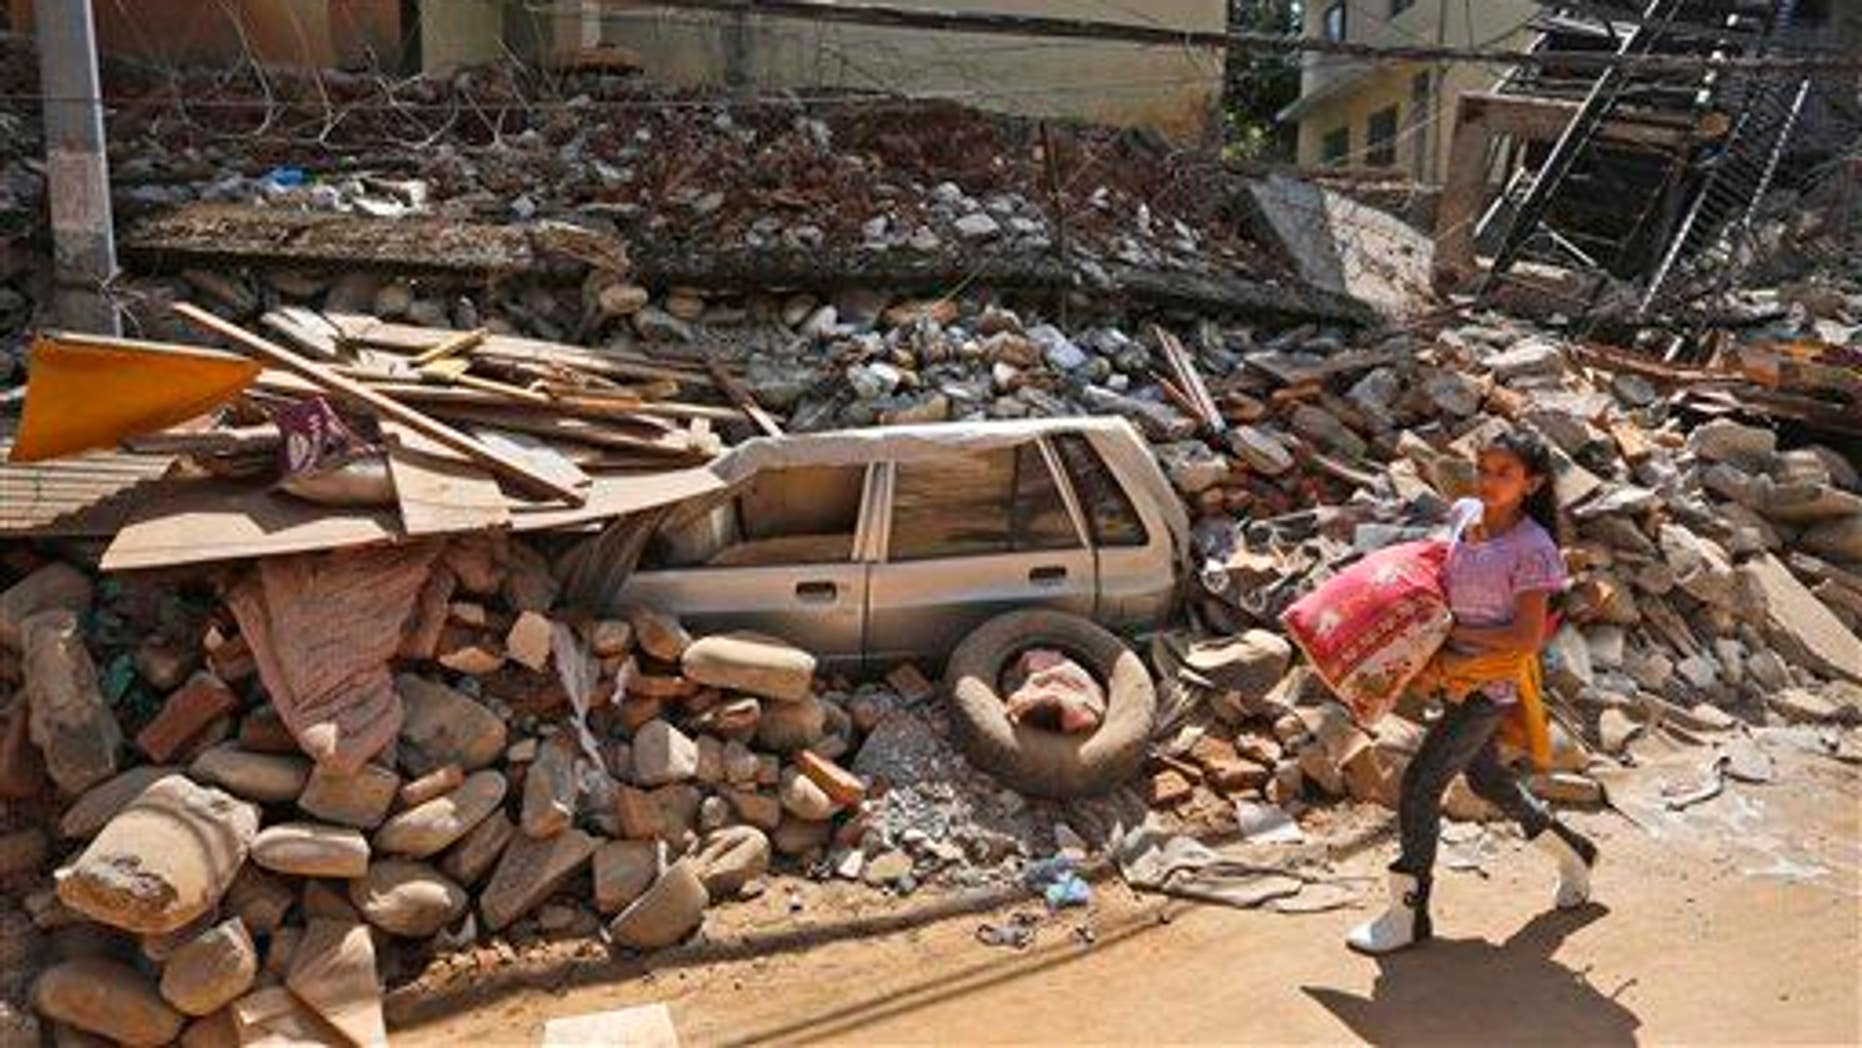 A Nepalese girl walks past a car, stuck in the debris of a damaged house, carrying a quilt received as relief material in Chautara, Sindhupalchok district, Nepal, Saturday, May 2, 2015.